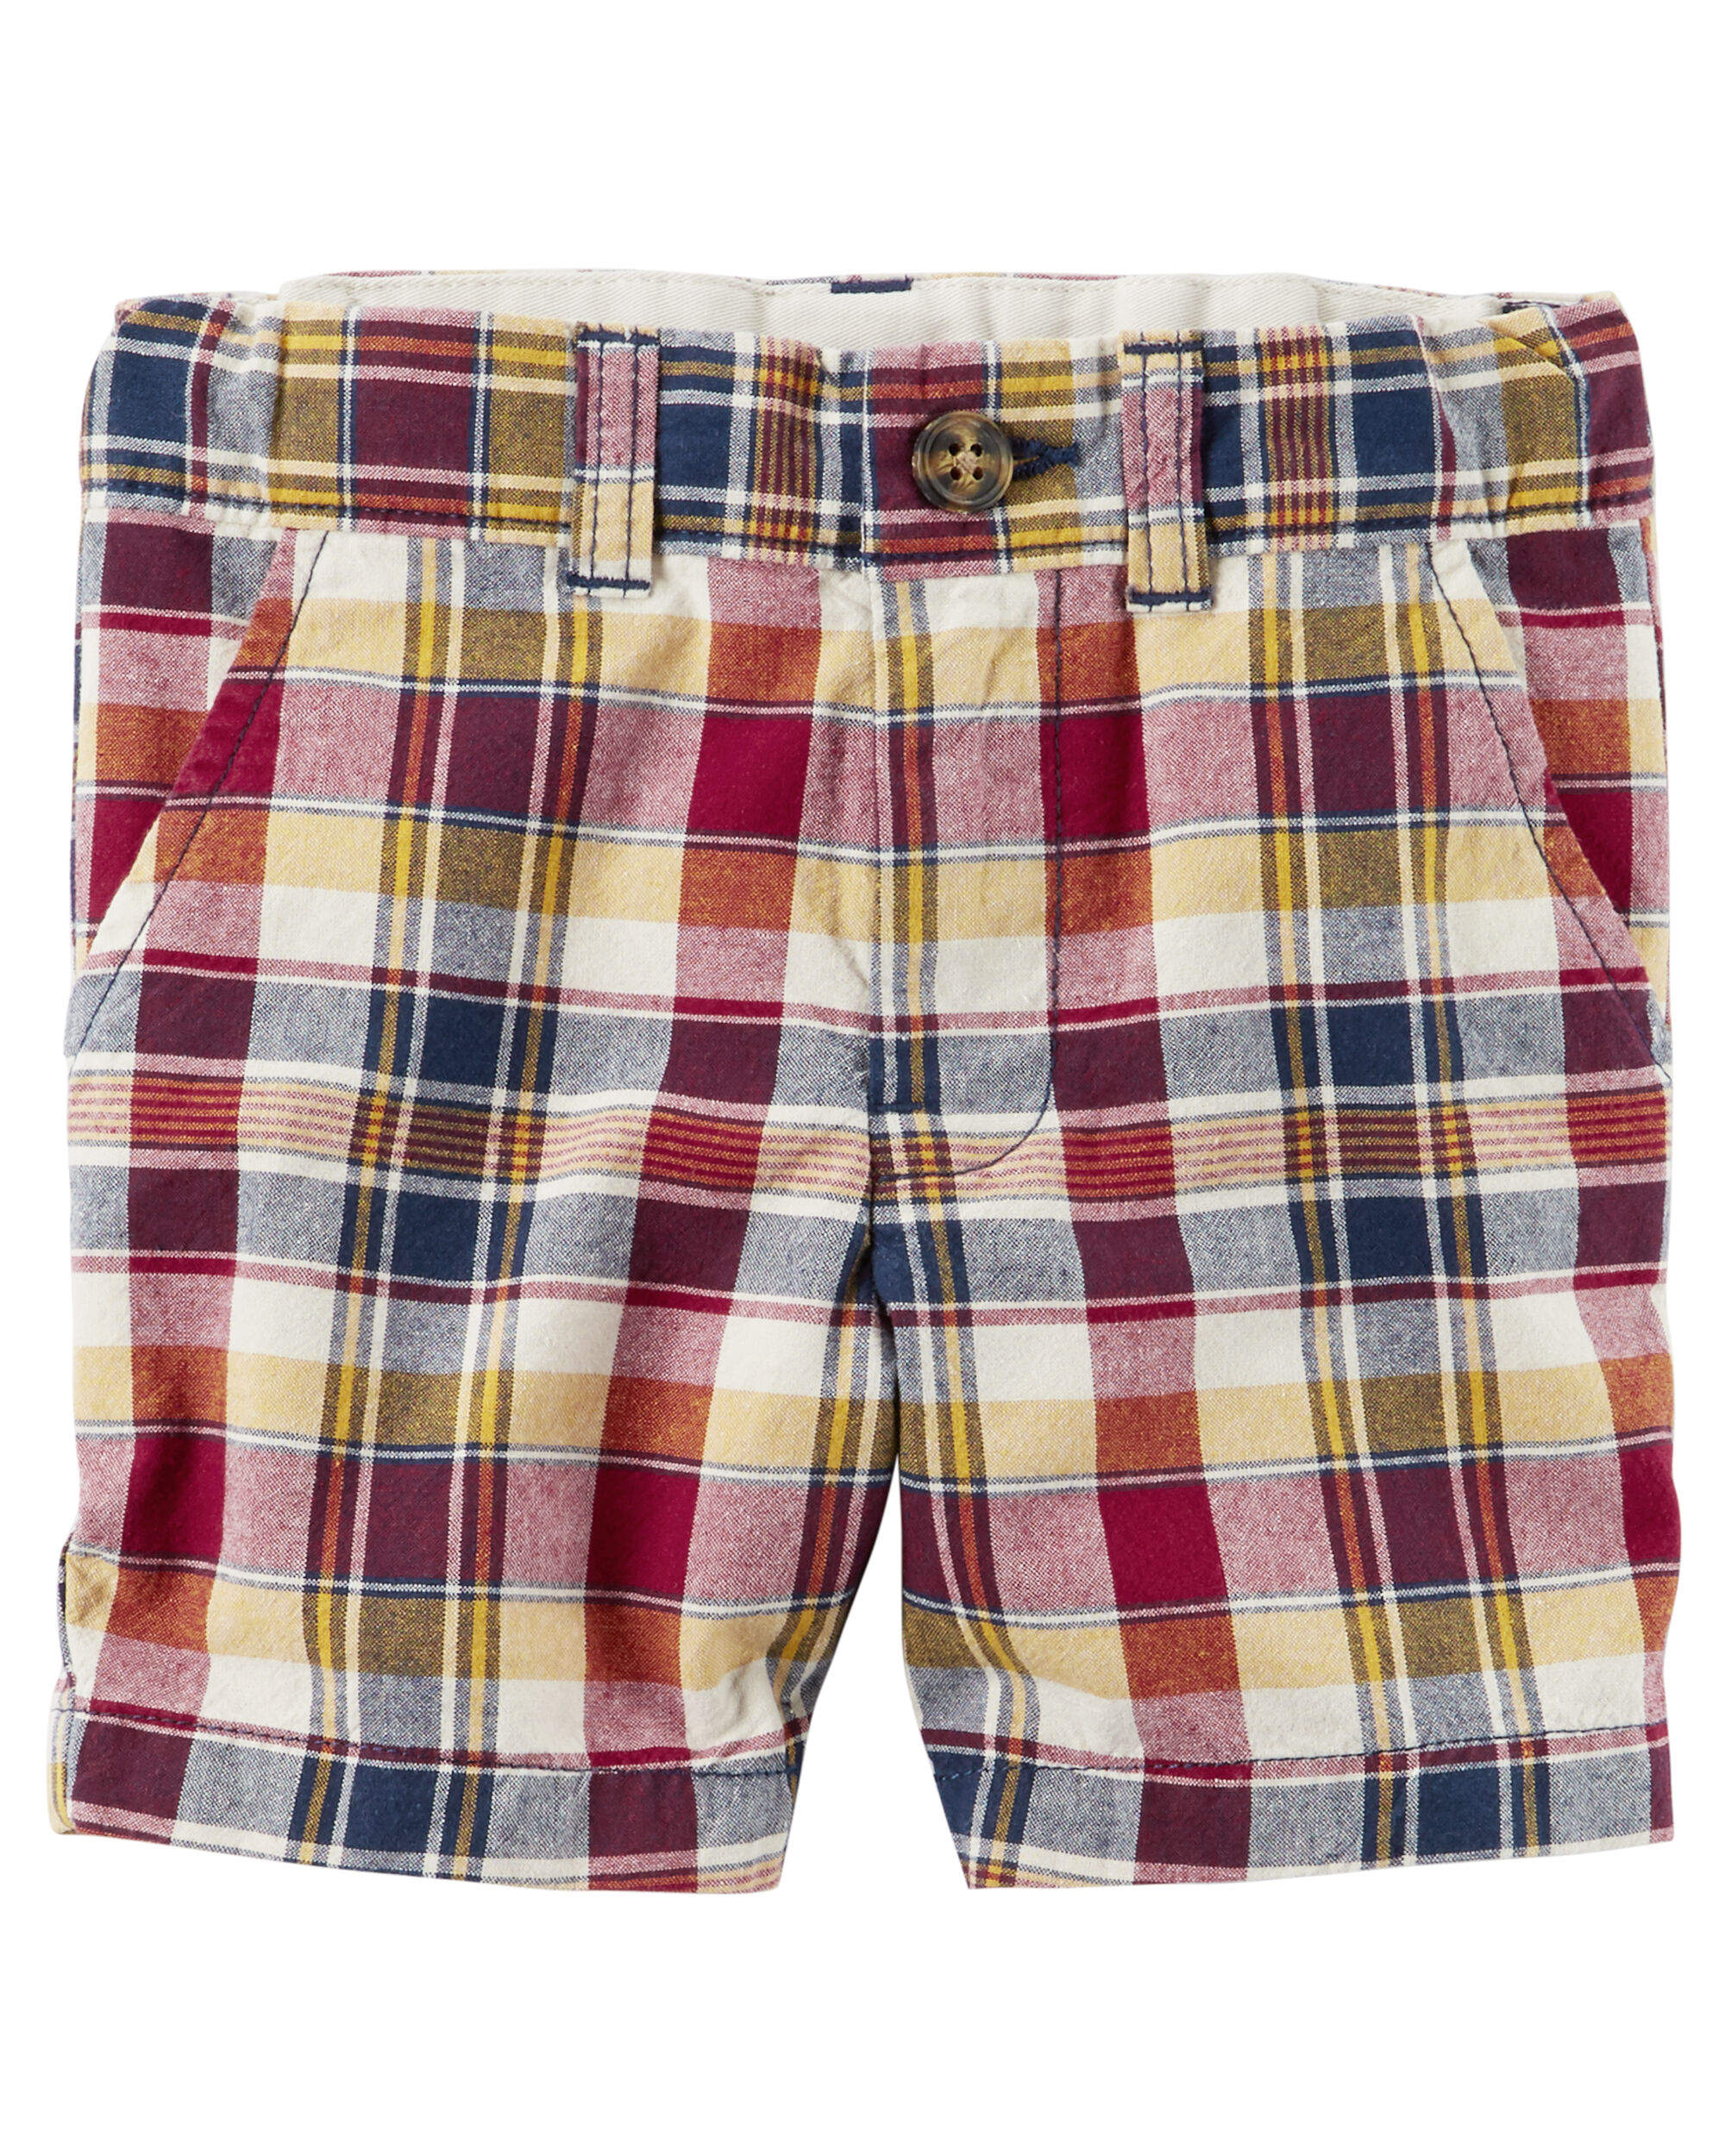 Carters Toddler Boys Plaid Flat-Front Twill Shorts Blue